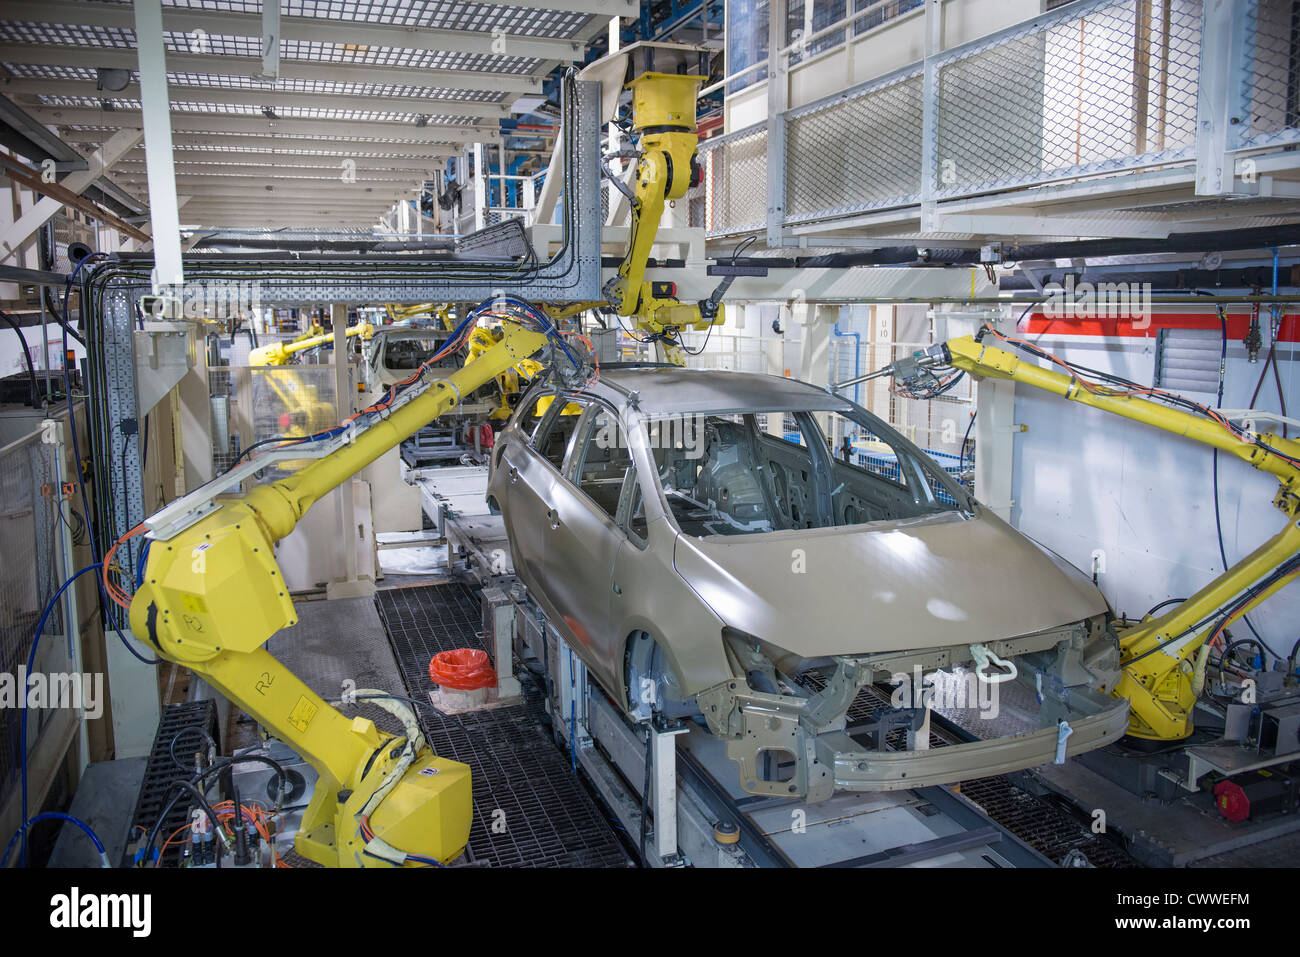 Robots applying sealant to cars in car factory - Stock Image